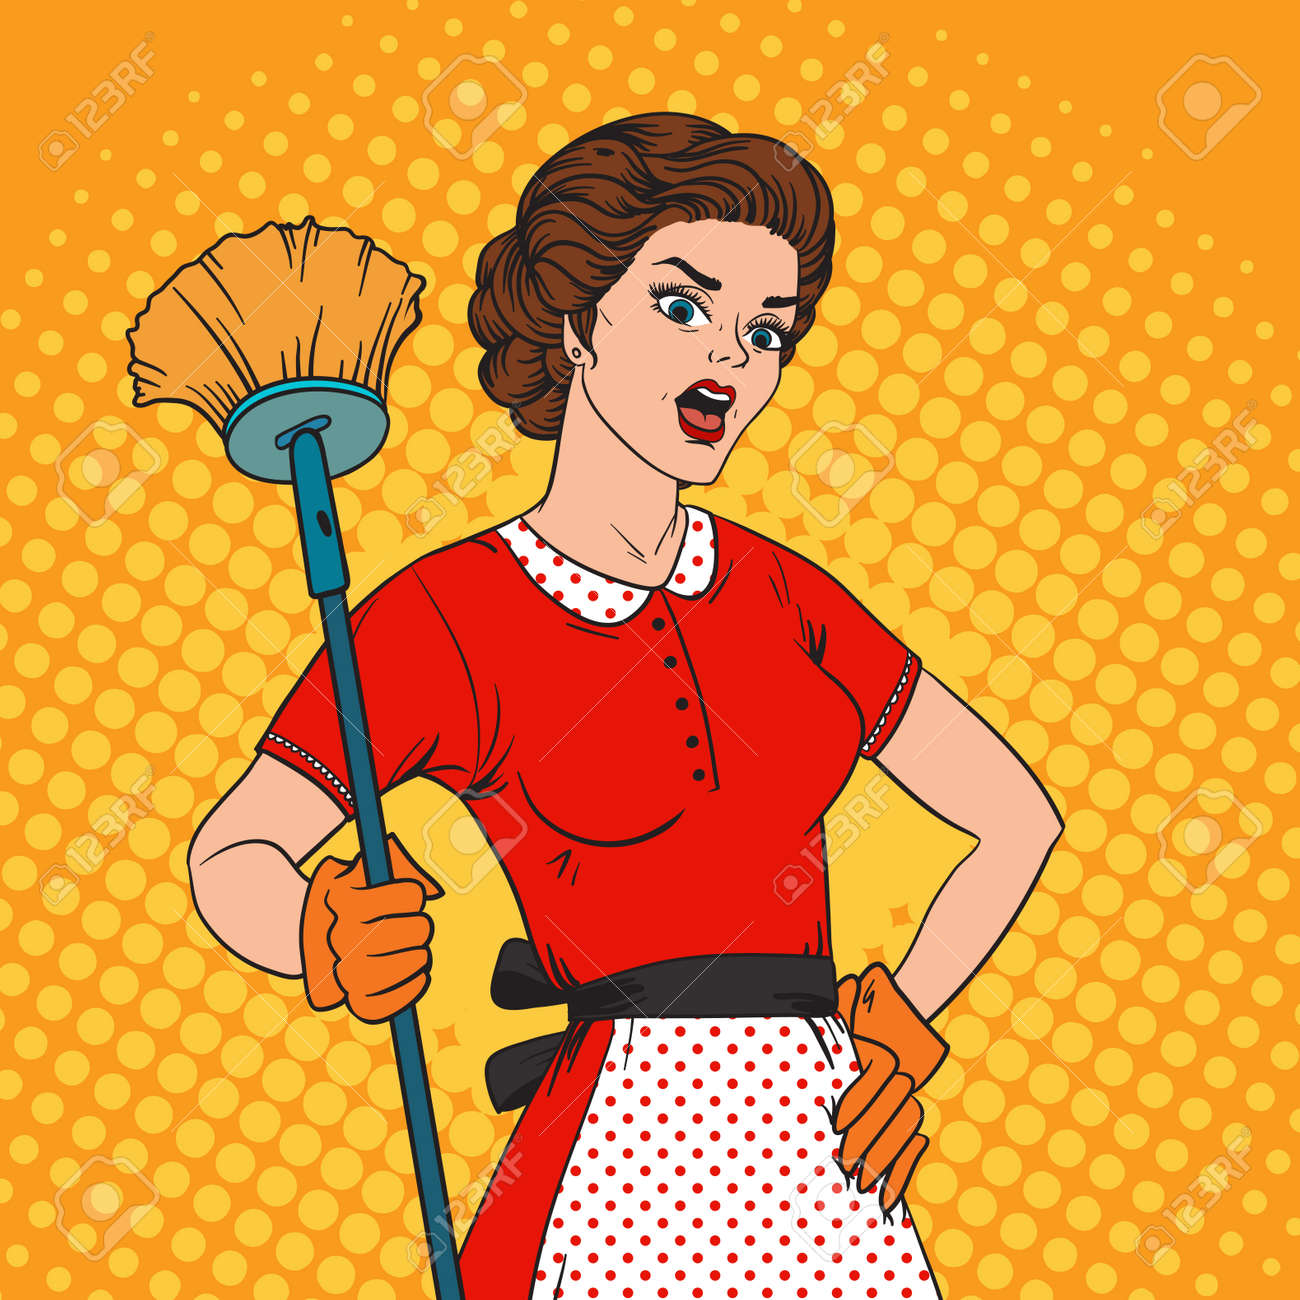 Pop Art woman comic style housewife woman. Cleaning war housewife girl vector illustration. Pop art style housewife girl strong girl. Domestic, kitchen, cleaning service housewife woman - 55177014